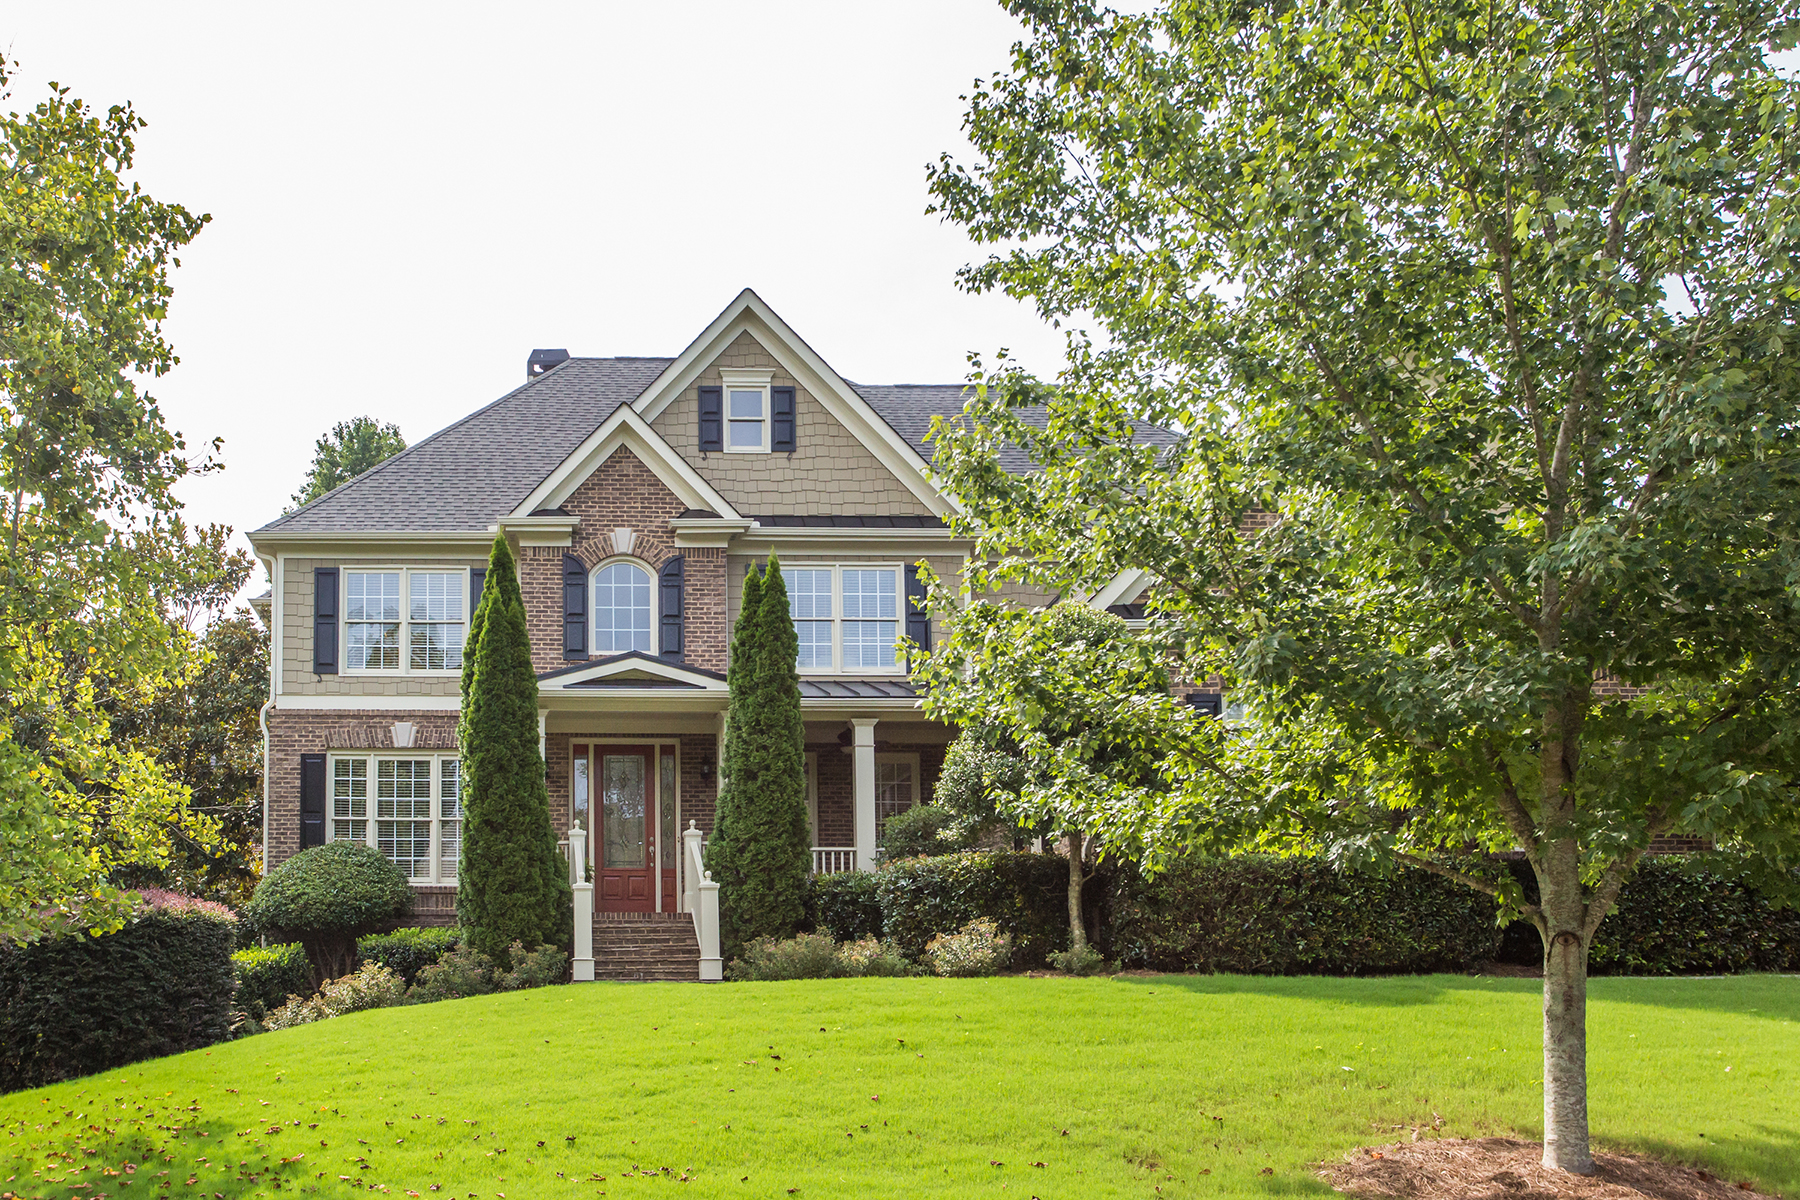 Single Family Home for Sale at Casual Elegance In Upscale East Cobb 2710 Rustling Pines Ct Marietta, Georgia 30062 United States